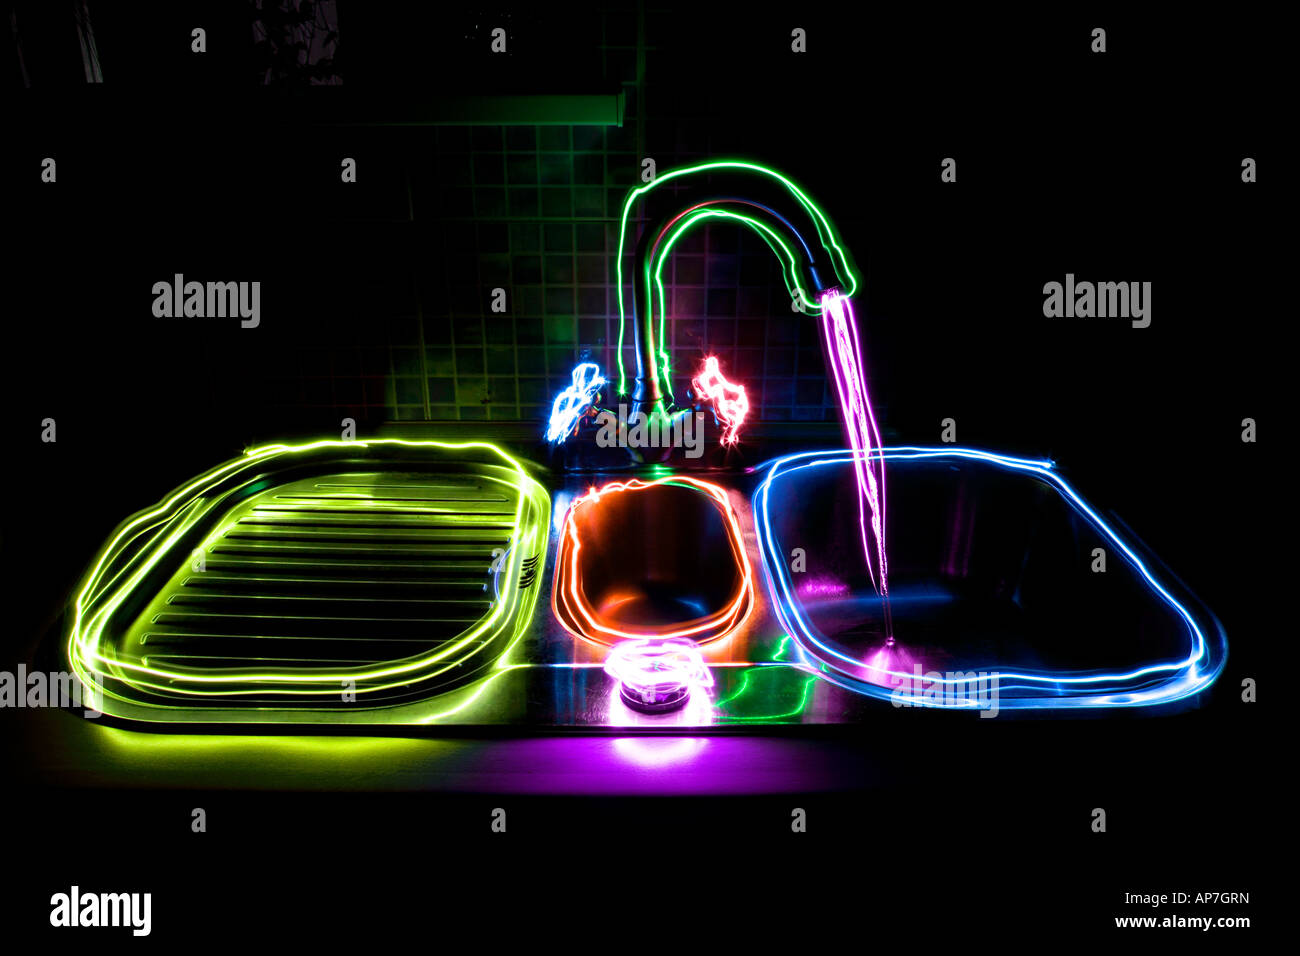 kitchen sink with taps painted with multi colored lights - Stock Image